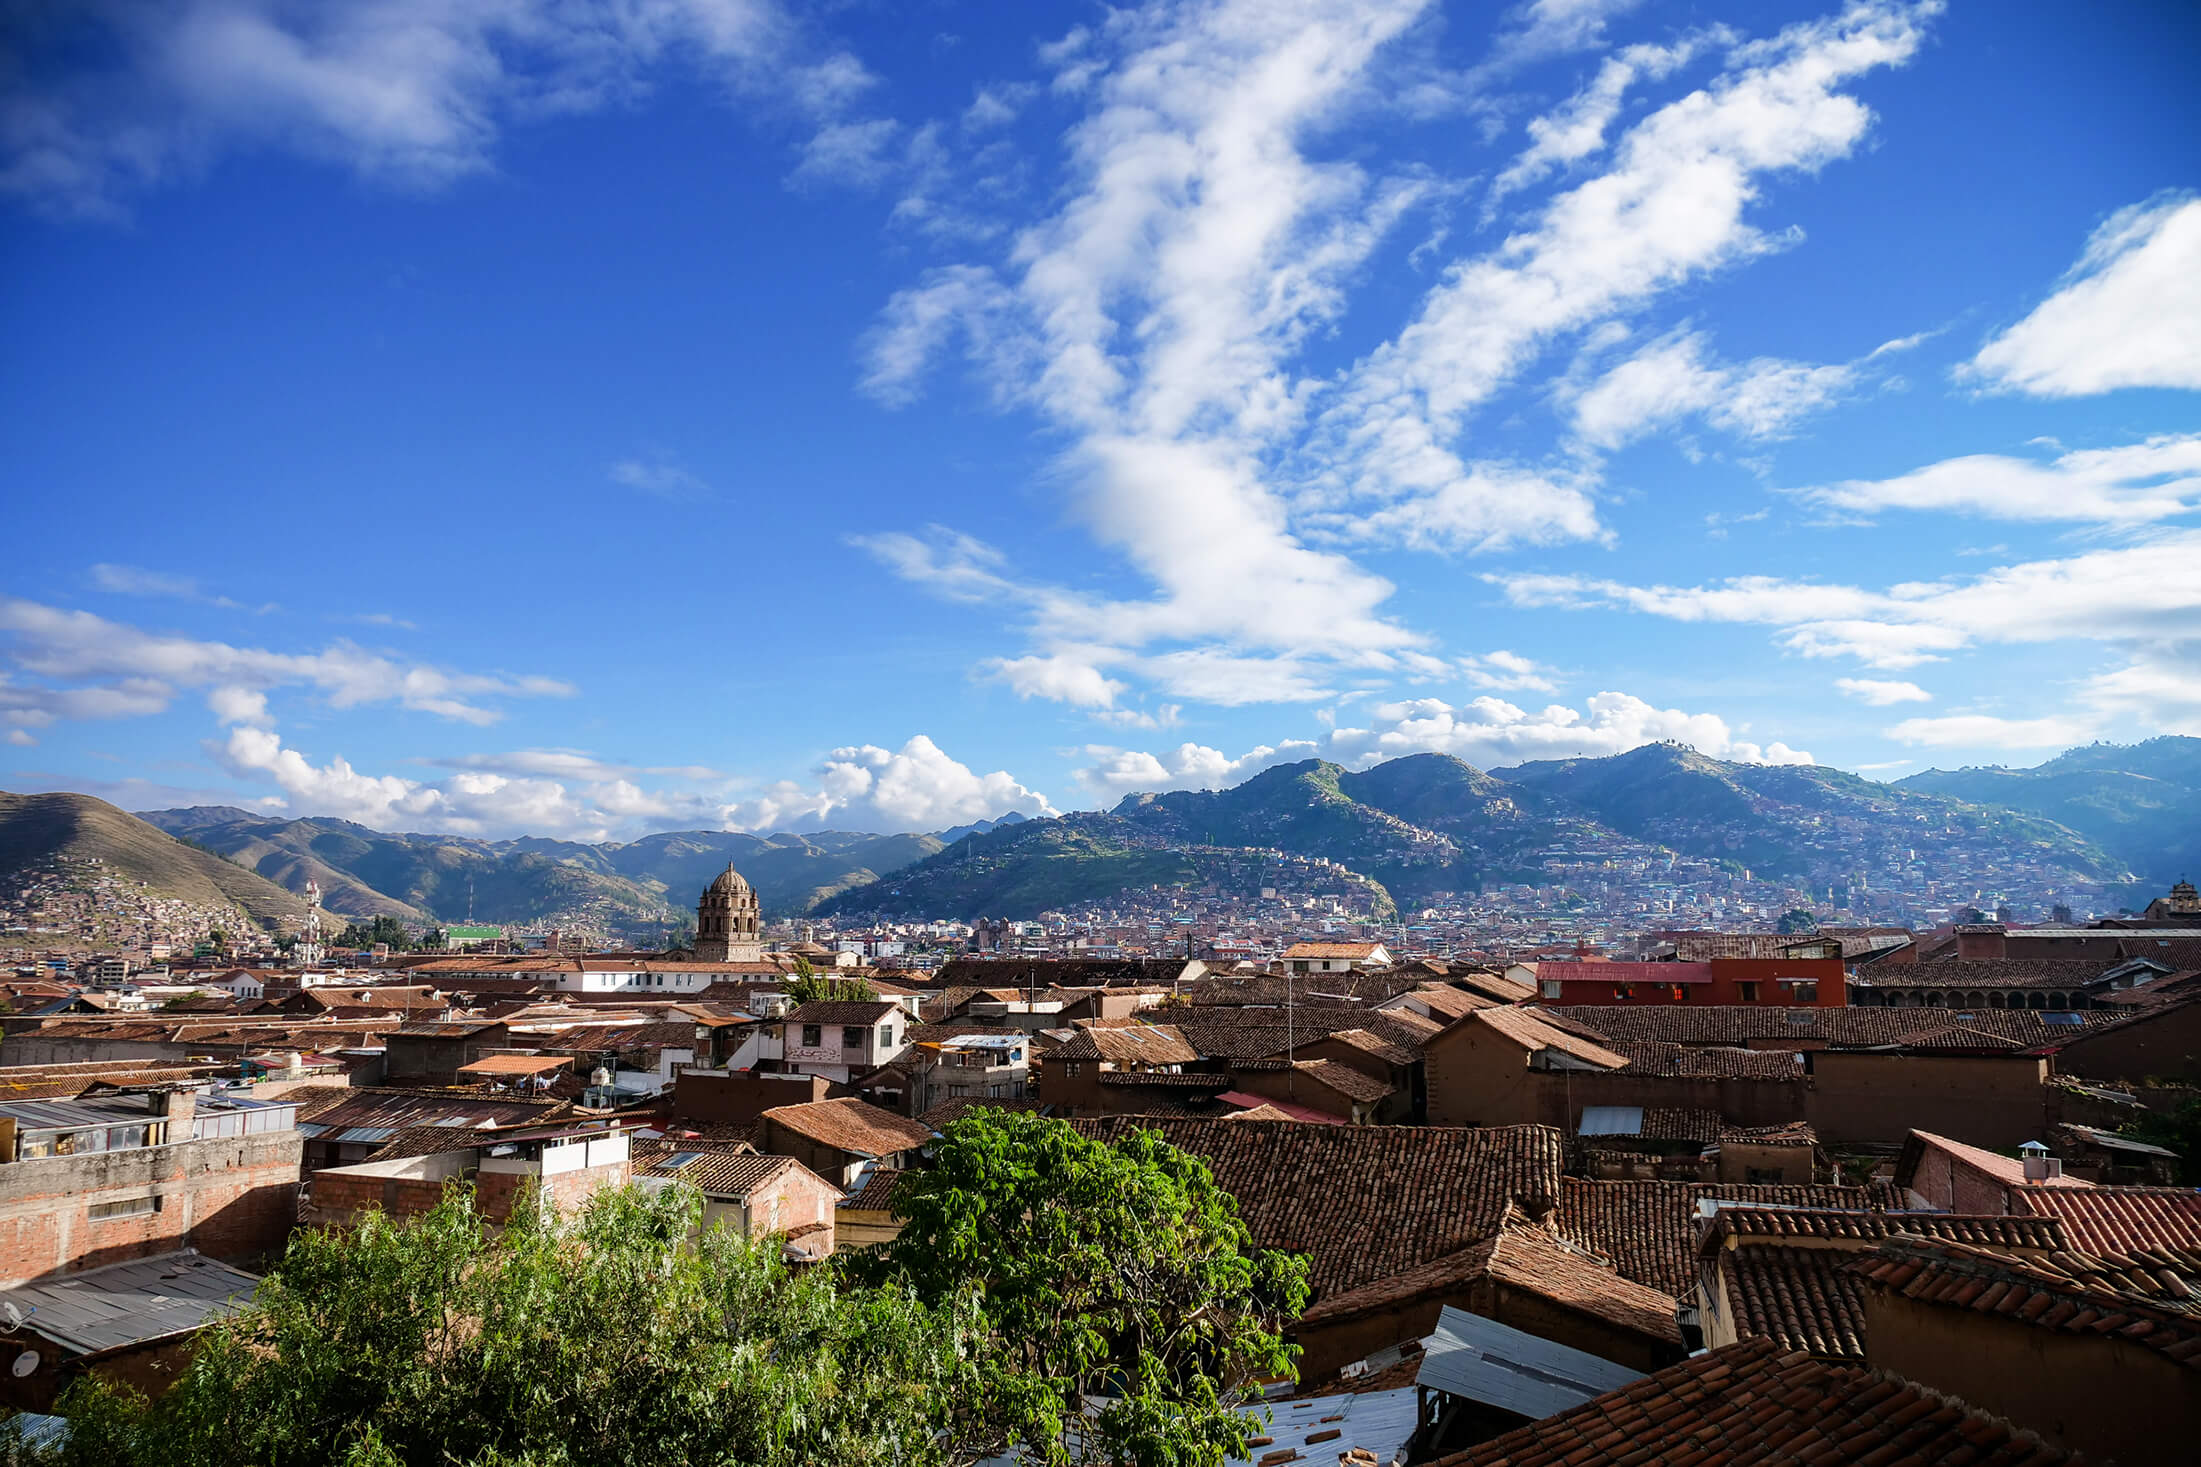 Cusco, A large city in Peru, and the historic Incan capital